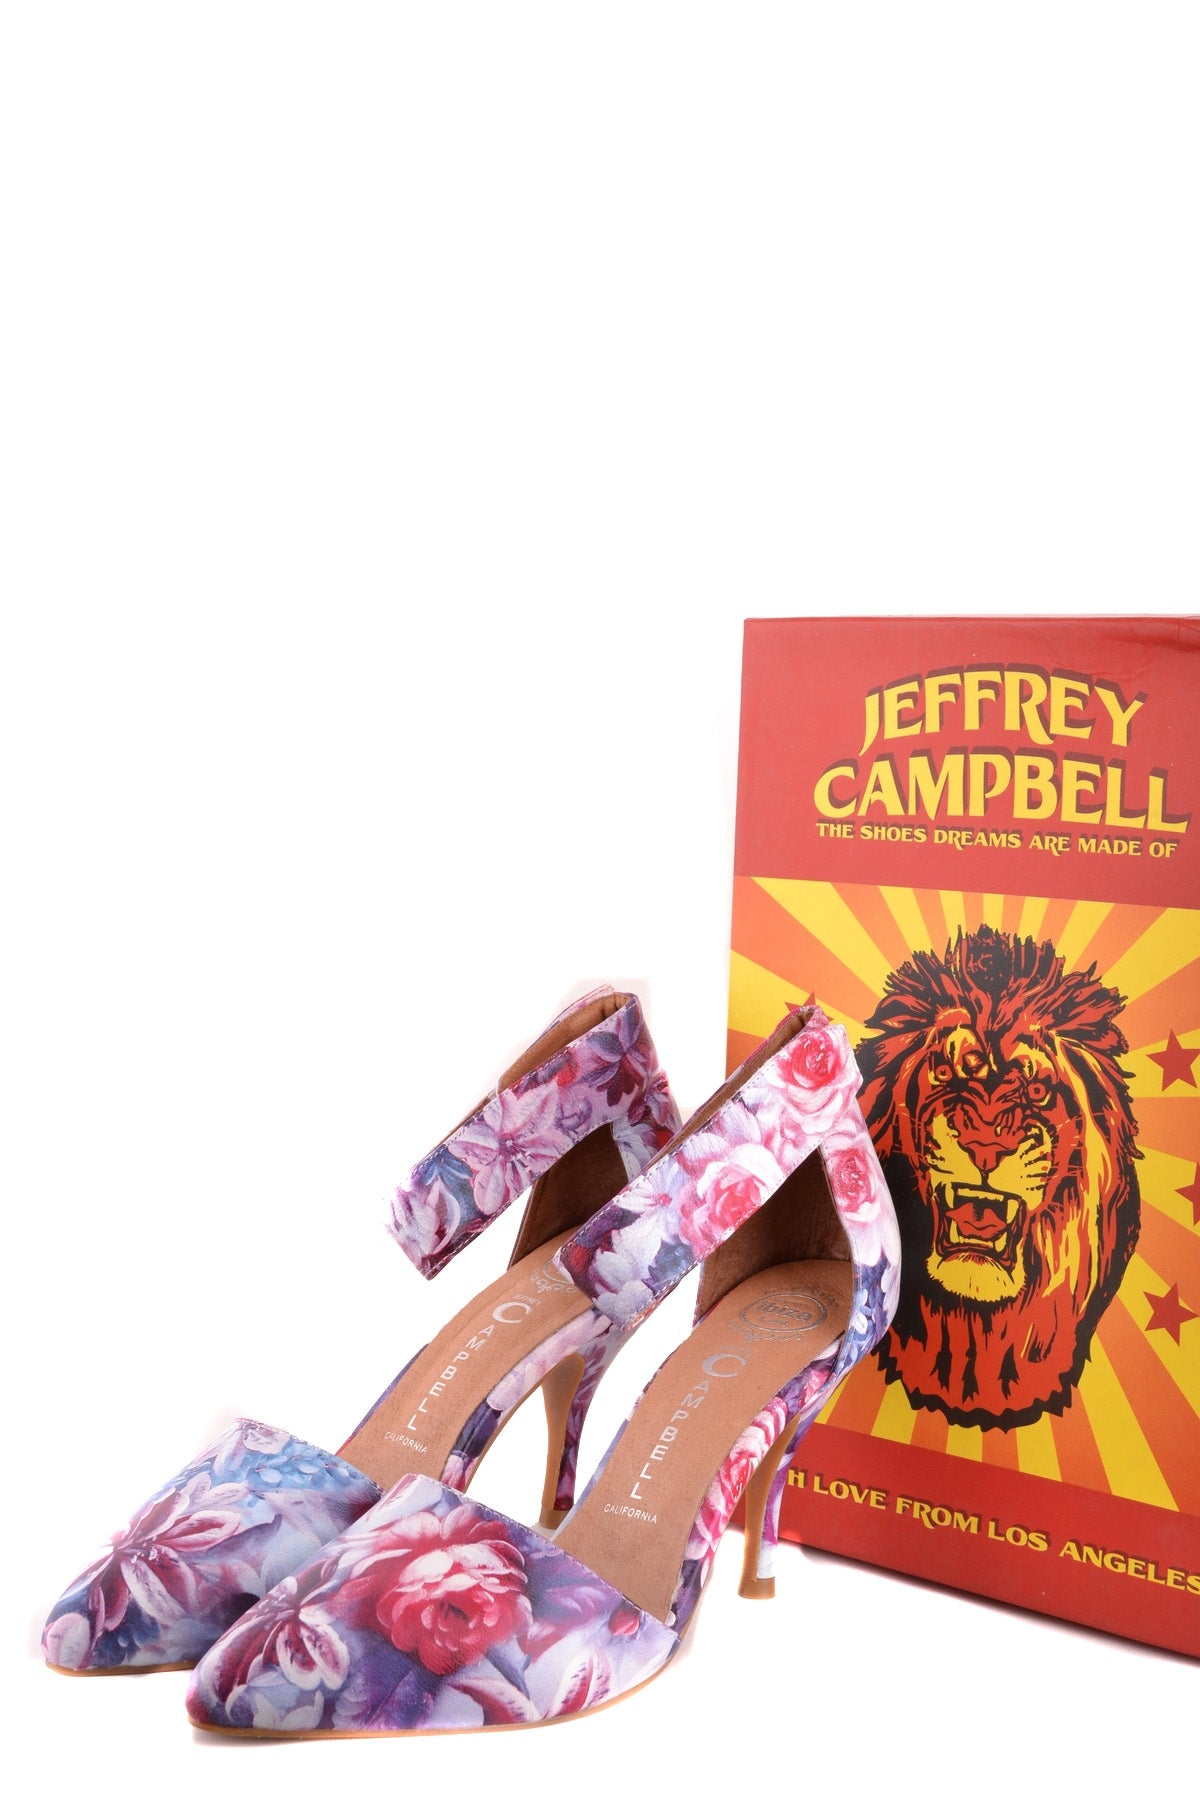 Shoes Jeffrey Campbell-Décolleté - WOMAN-Product Details Type Of Accessory: ShoesTerms: New With LabelMain Color: MulticolorSeason: Spring / SummerYear: 2017Size: EuGender: WomanComposition: Leather 100%-Keyomi-Sook